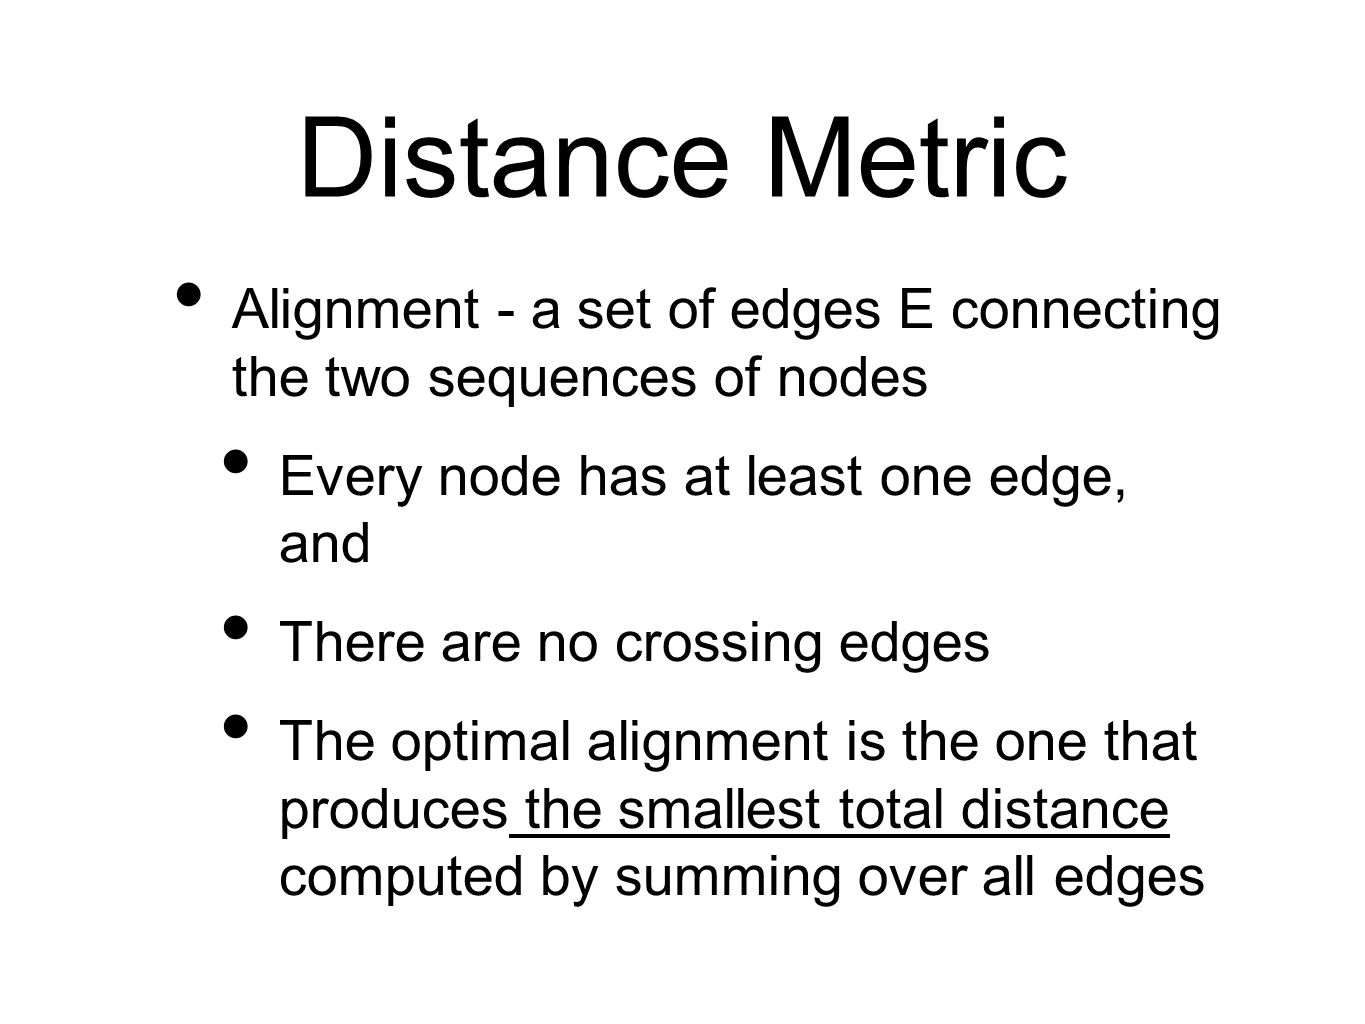 Distance Metric Alignment - a set of edges E connecting the two sequences of nodes Every node has at least one edge, and There are no crossing edges The optimal alignment is the one that produces the smallest total distance computed by summing over all edges